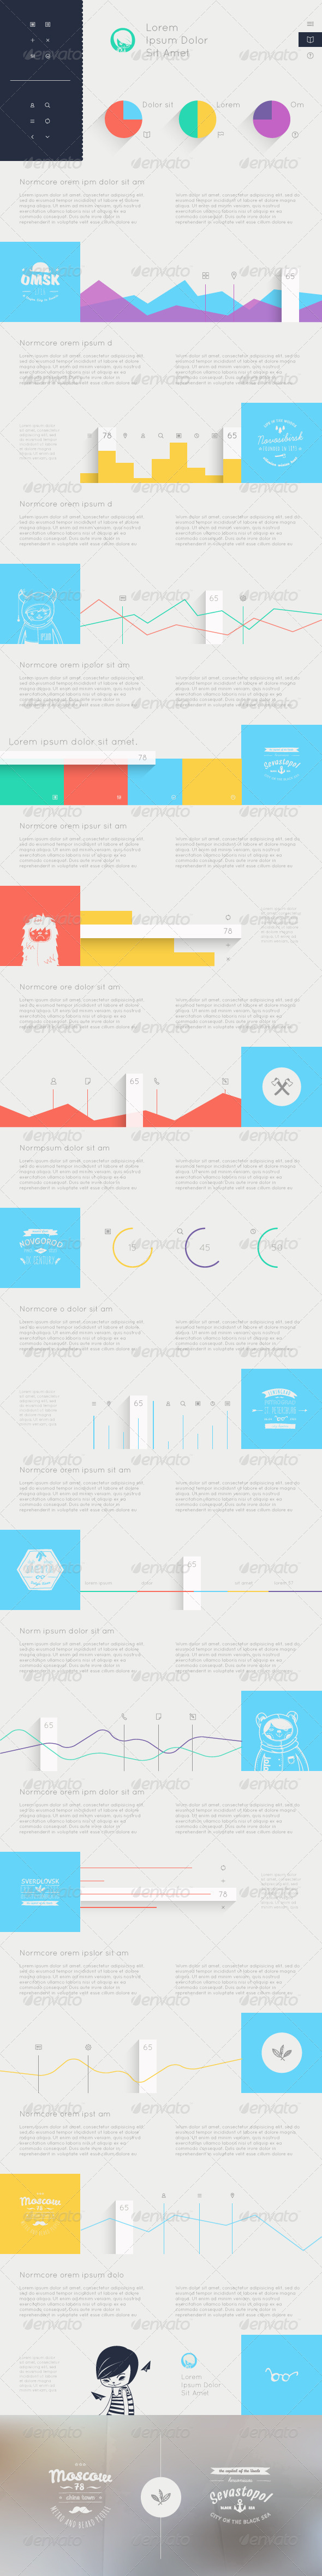 Elements of Infographics with Buttons and Menus - Web Elements Vectors